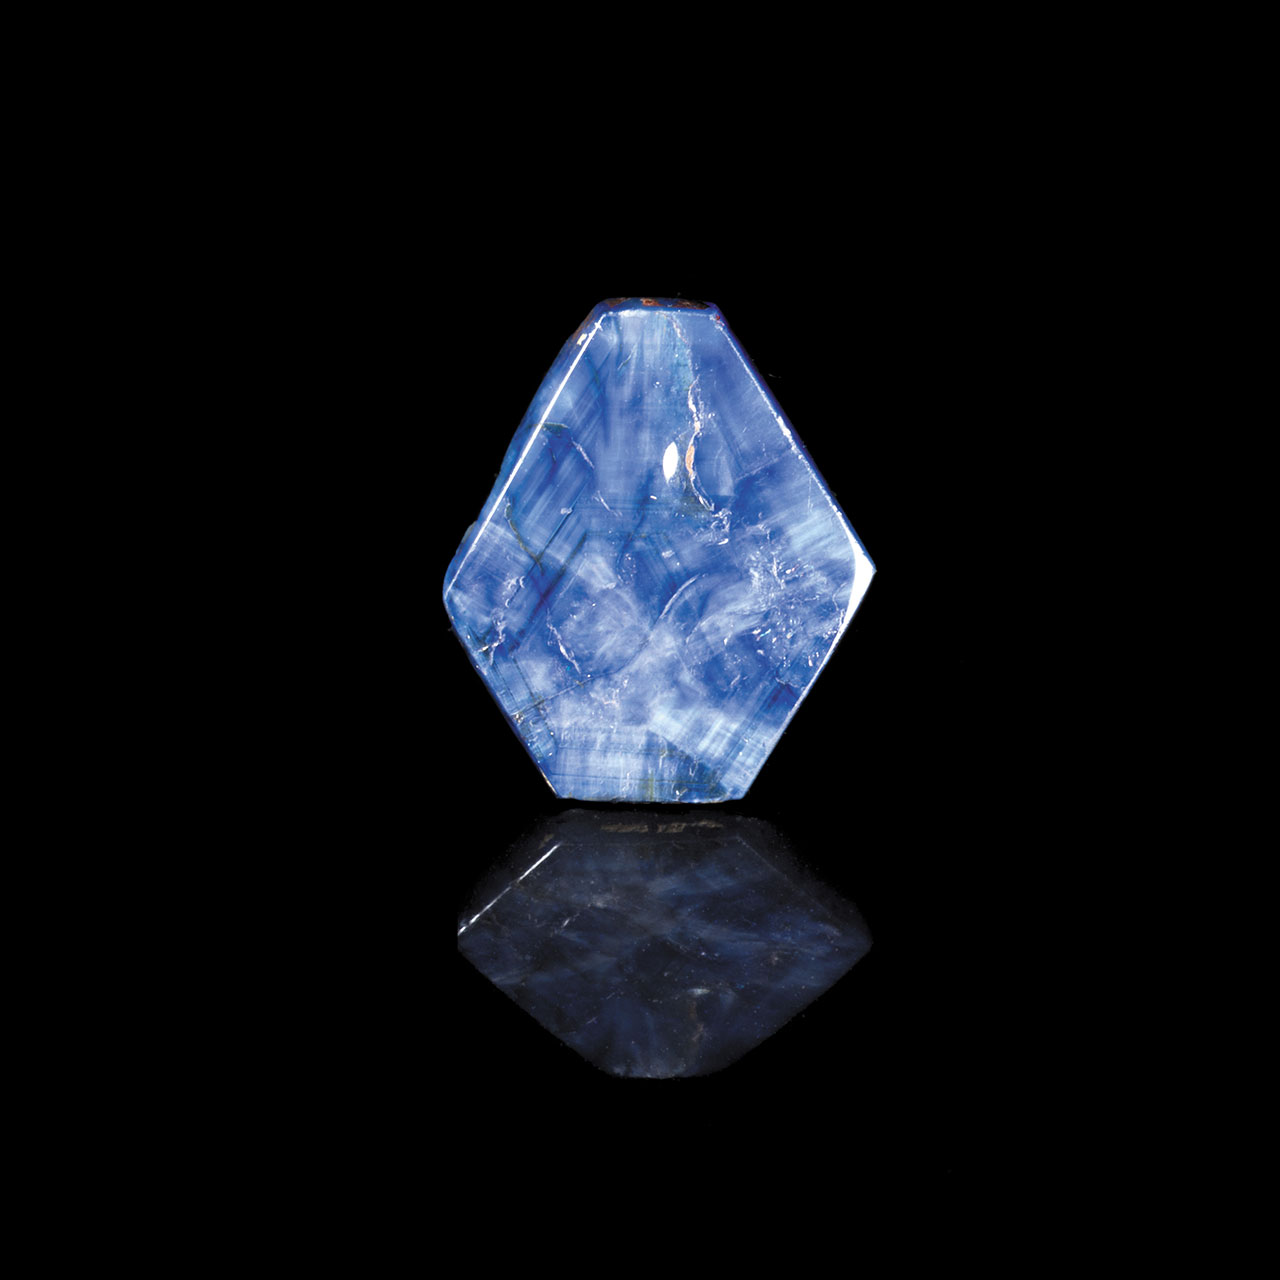 Sapphire single crystal (13.5 carats polished) showing growth patterns. Sri Lanka. MNHN Collection, Paris © MNHN/F. Farges.